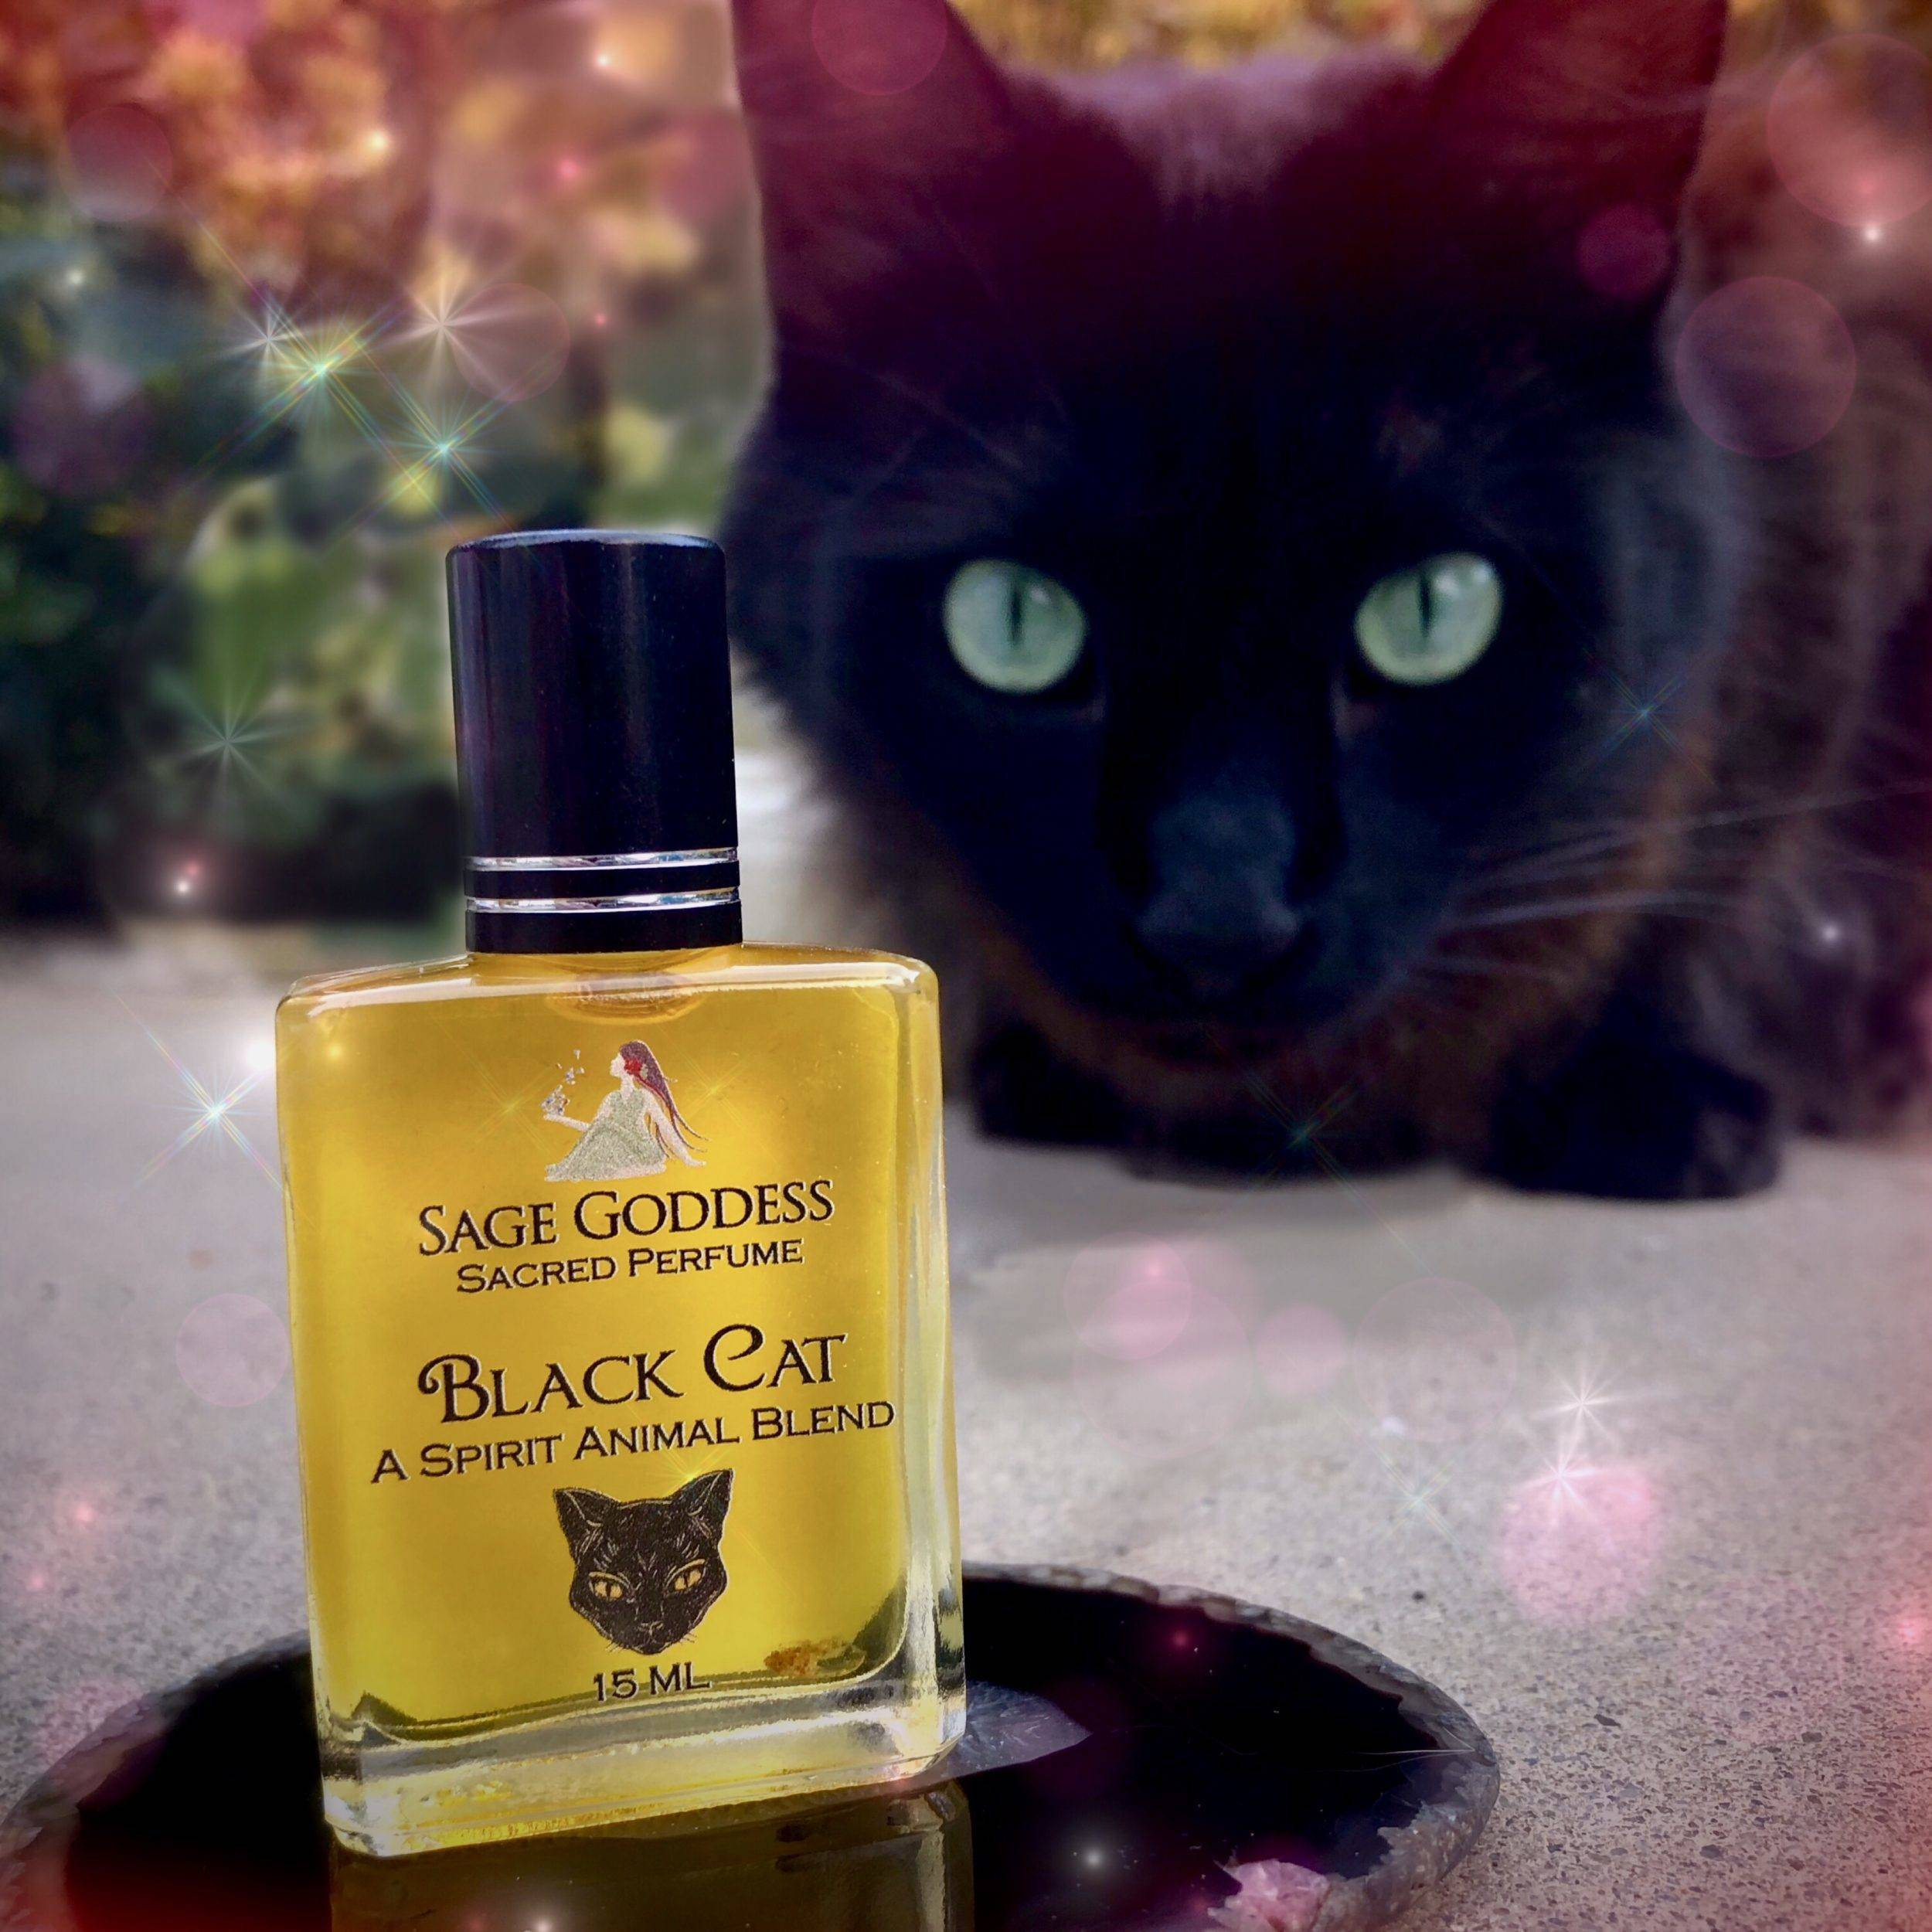 Black Cat Perfume for introspection, mystery, and otherworldly magic